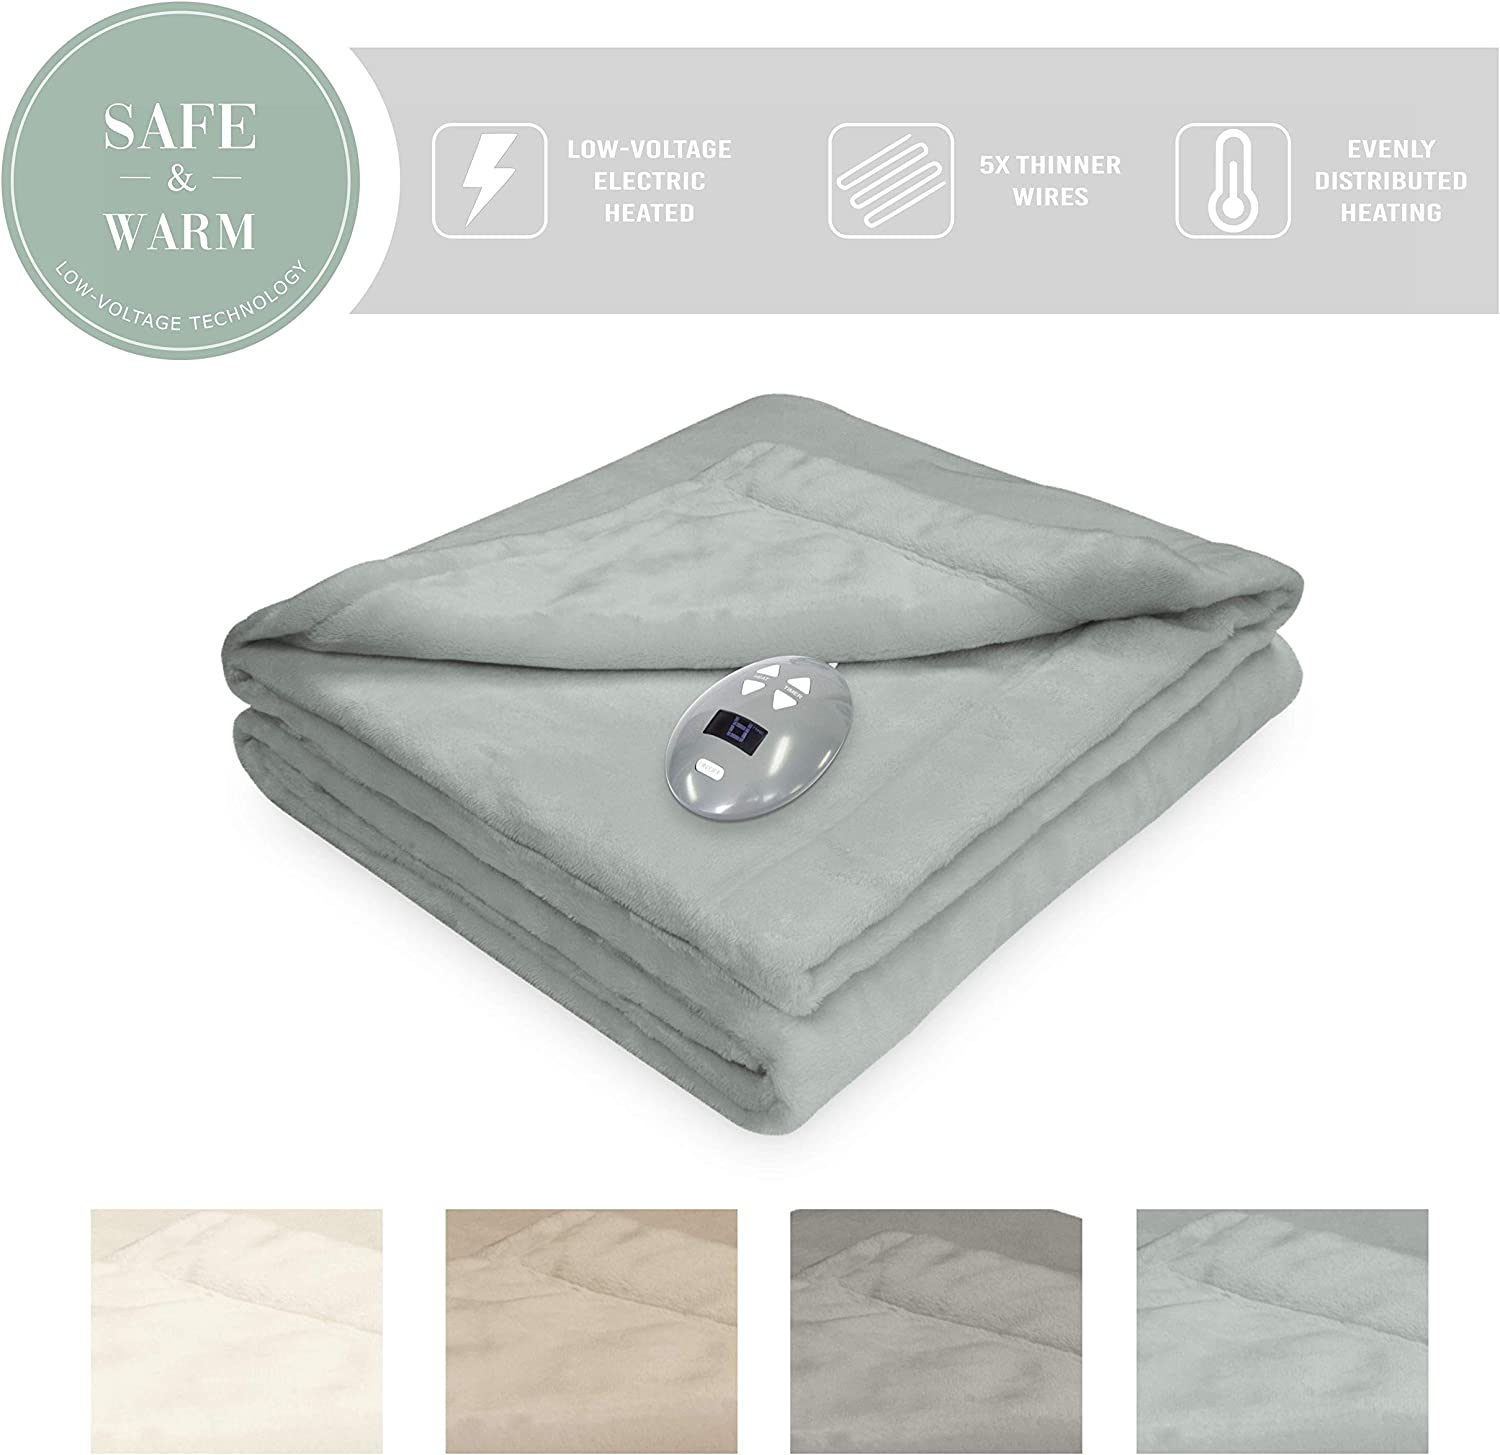 Soft Heat 856542 Low Voltage Heated Electric Luxe Plush Warming Blanket Full Gray